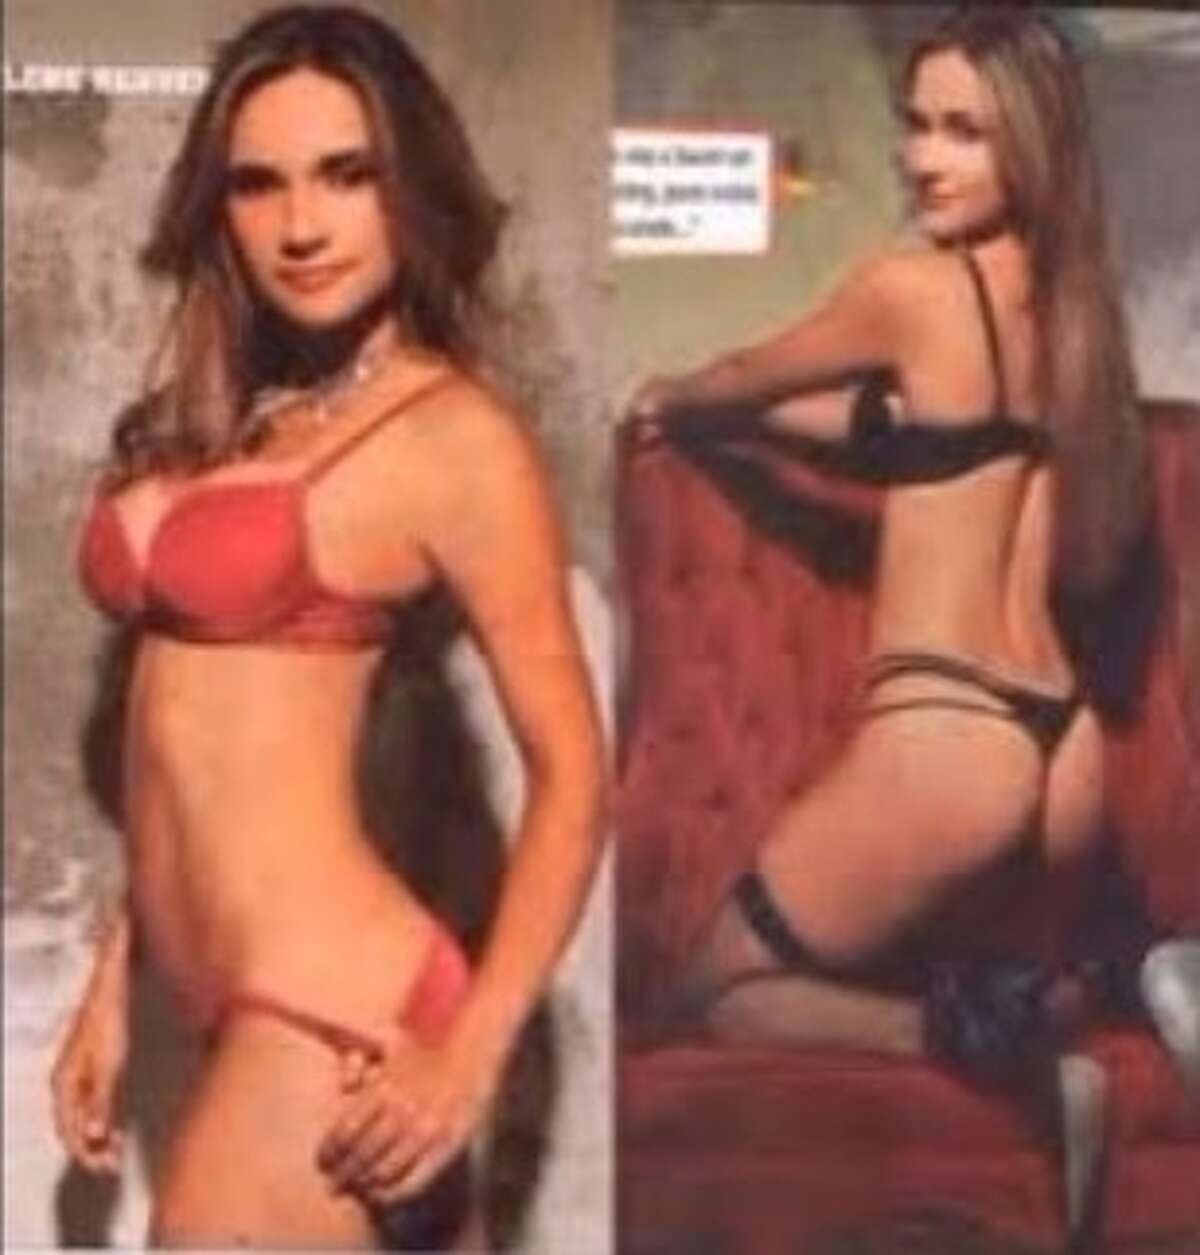 YouTube user ZOO AMIGO3 is just one social media user to share these racy photos of Nuevo León legislator Marlene Benvenutti in lingerie. According to media reports, the photos were taken when Benvenutti was a model, around eight years ago. The photos surfaced after she denounced Nuevo León Governor Rodrigo Medina de la Cruz.